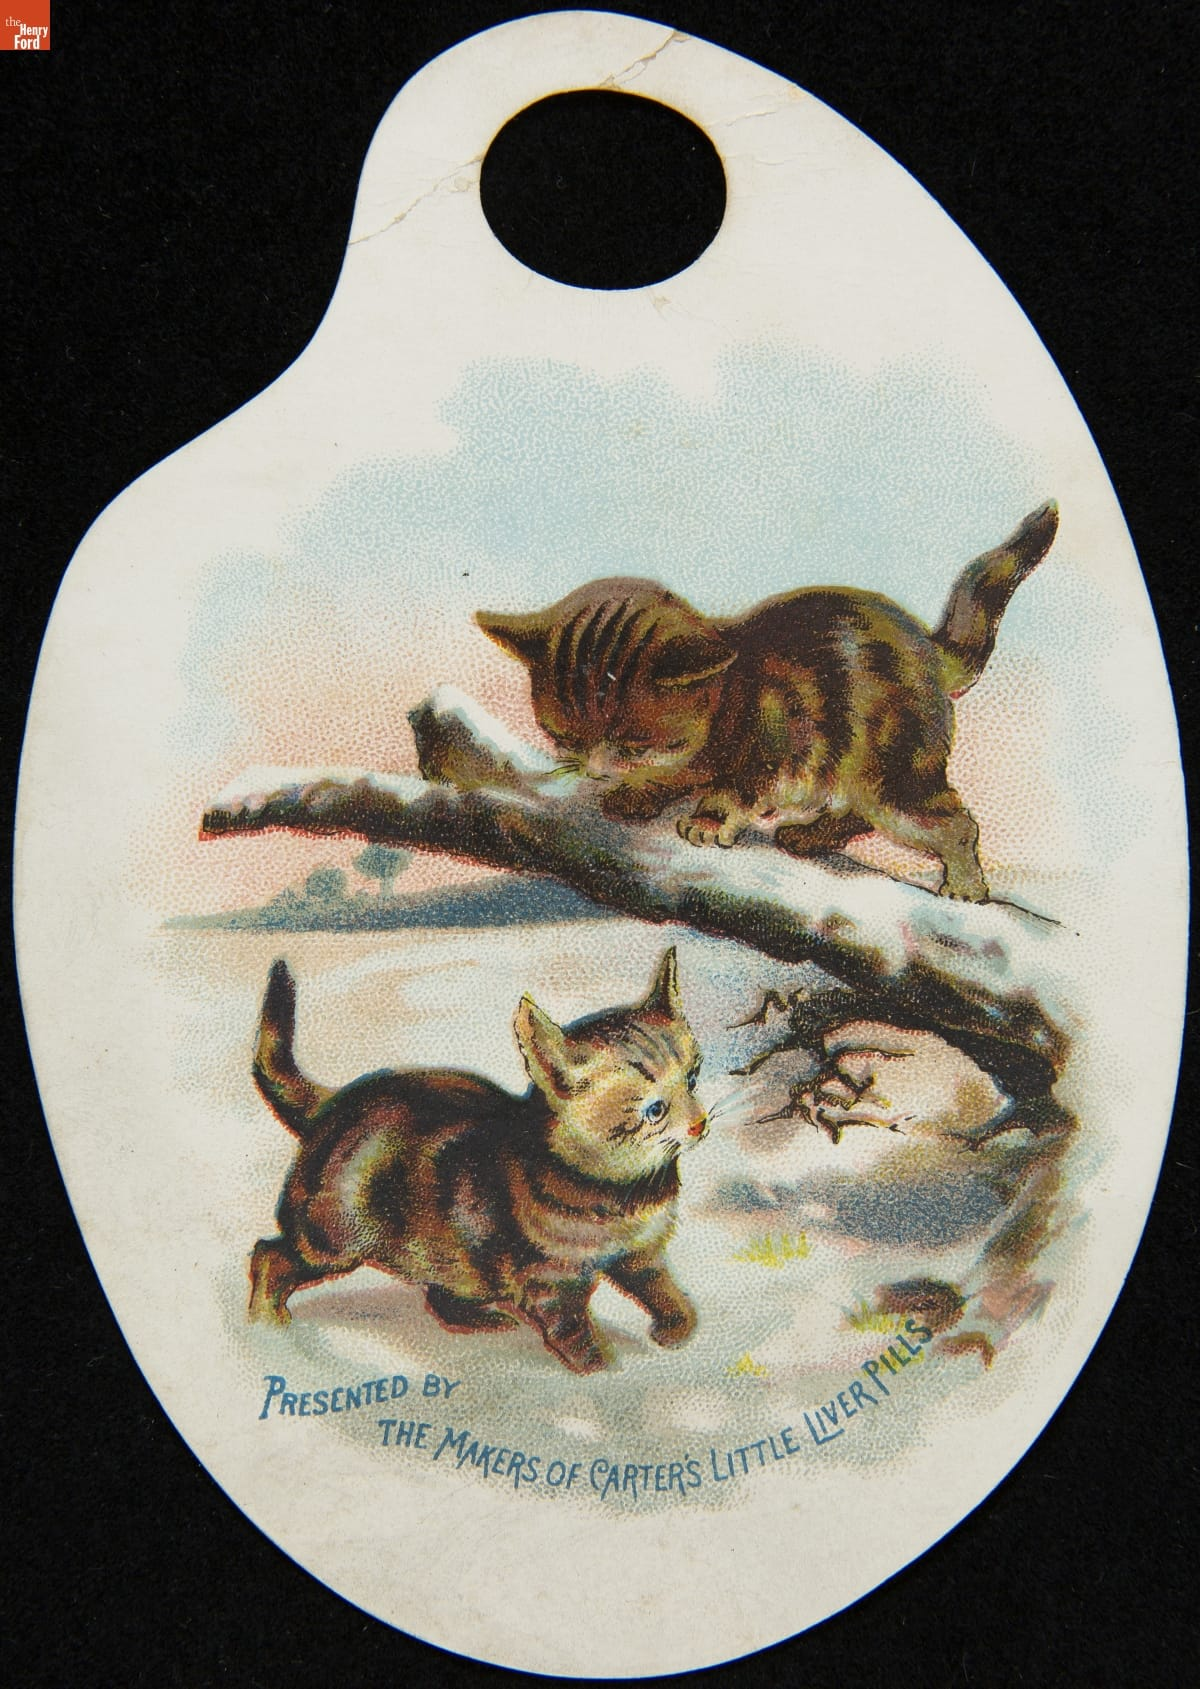 Palette-shaped paper containing illustrations of two kittens cavorting in snow